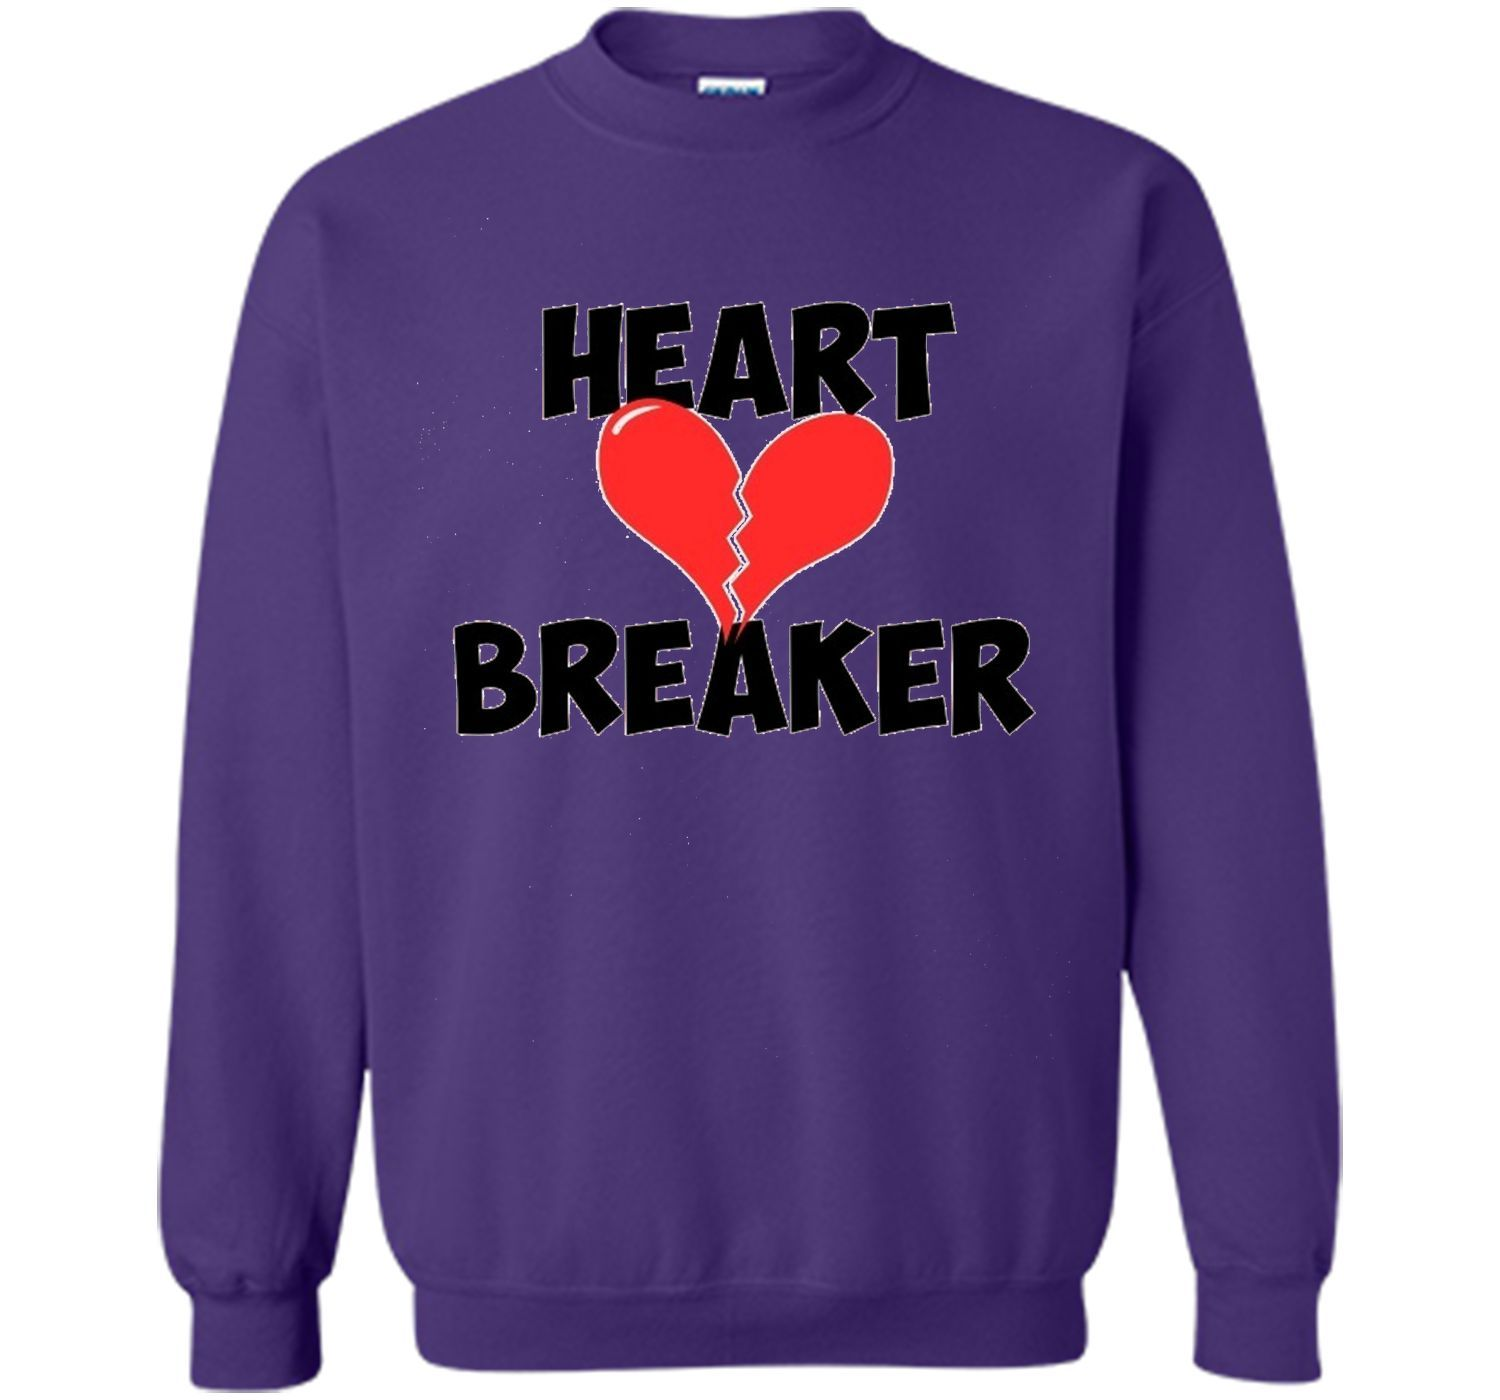 Cute Valentines Day Shirt Heart Breaker Heartbreaker